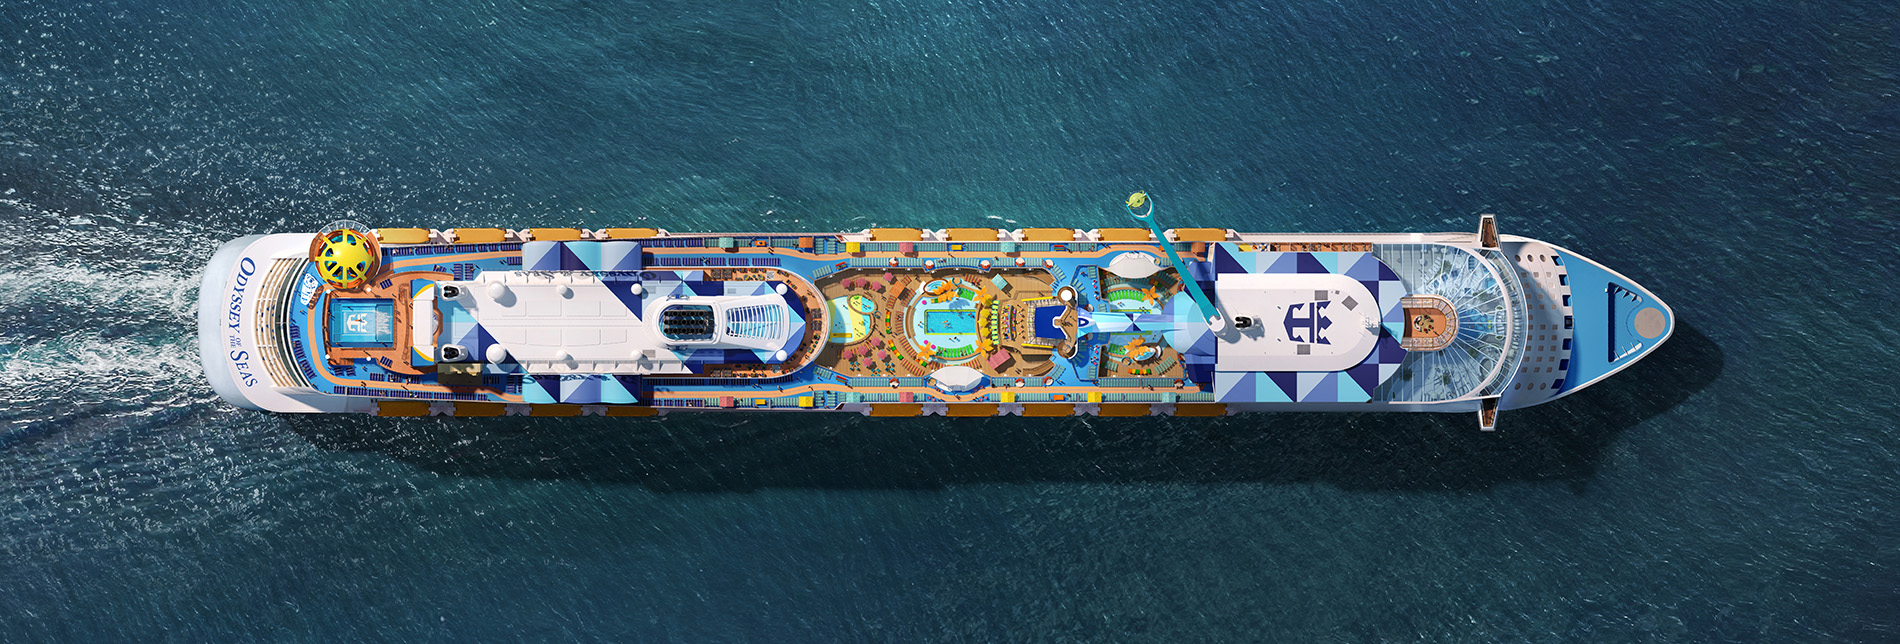 Odyssey Of The Seas ship